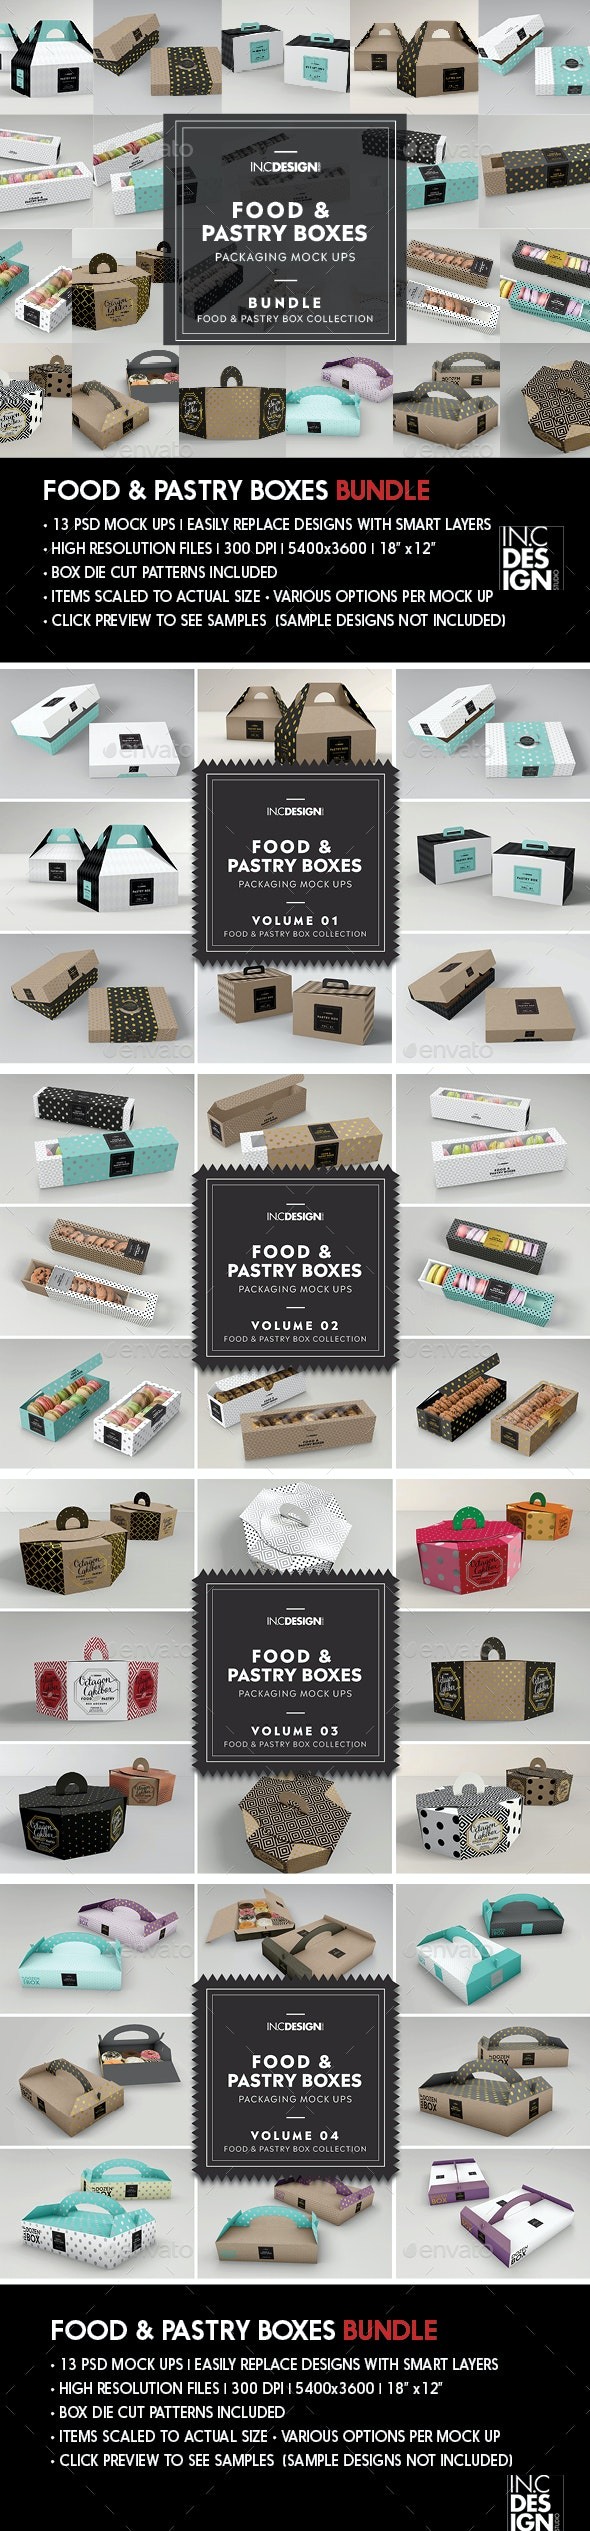 Food Pastry Boxes Mockup Bundle: Take out Packaging Mockups - Food and Drink Packaging